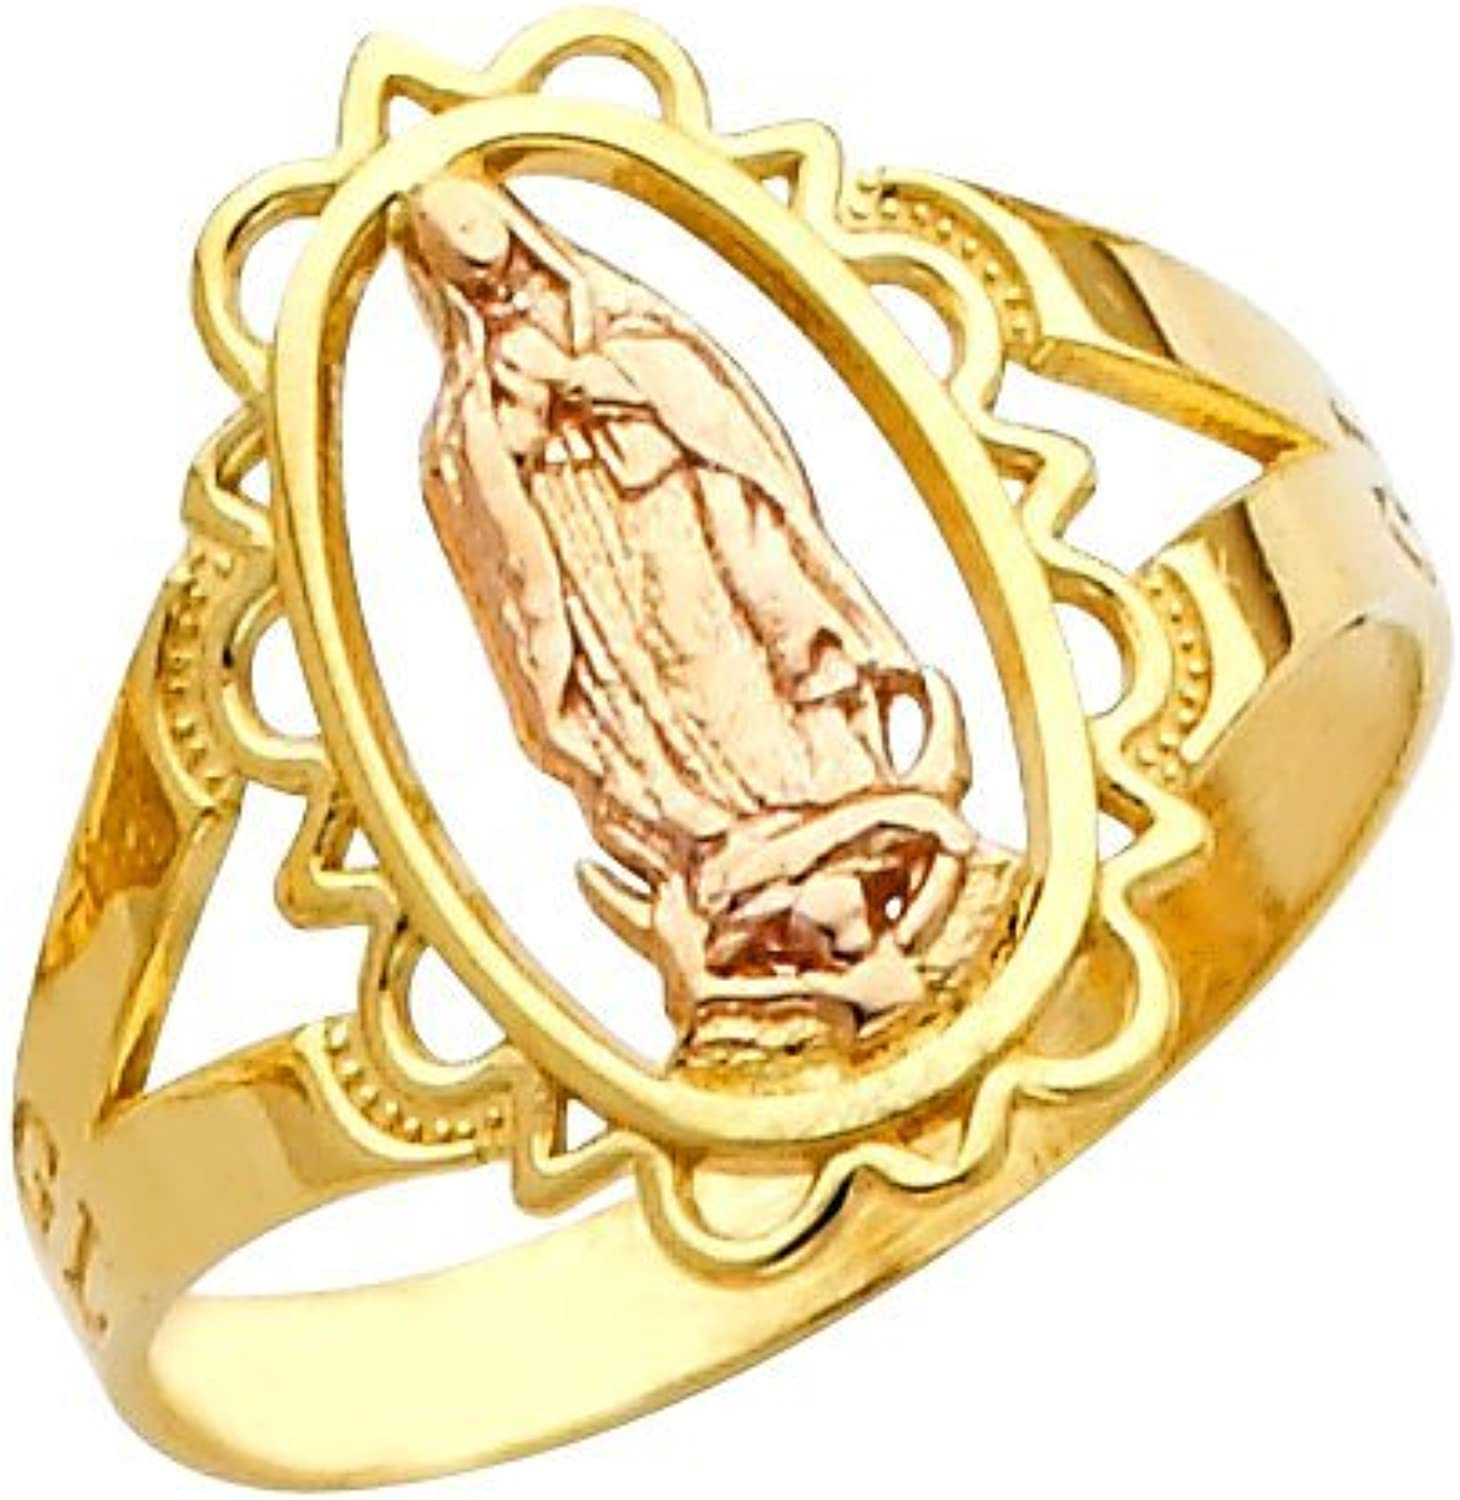 10k TwoTone Yellow and pink gold Oval FiligreeStyle Charm Blessed Mother Mary Ring